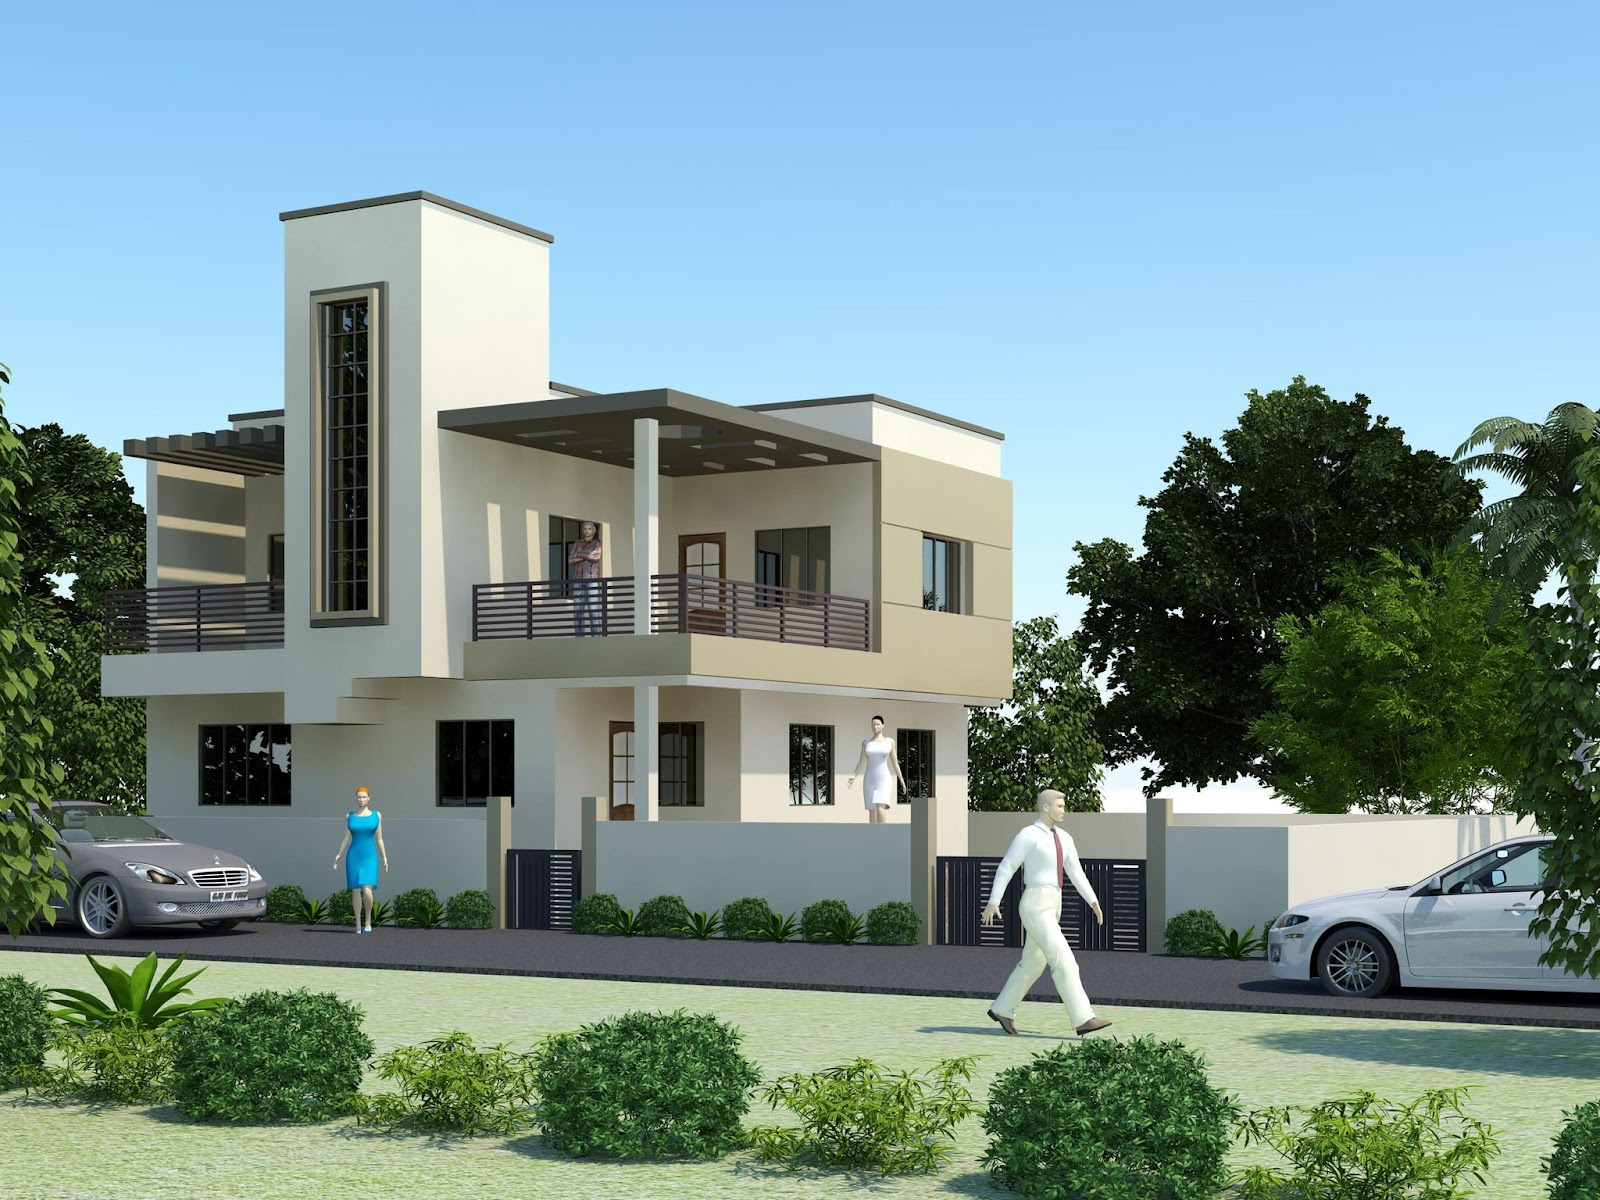 New home designs latest modern homes exterior designs front views pictures House design images